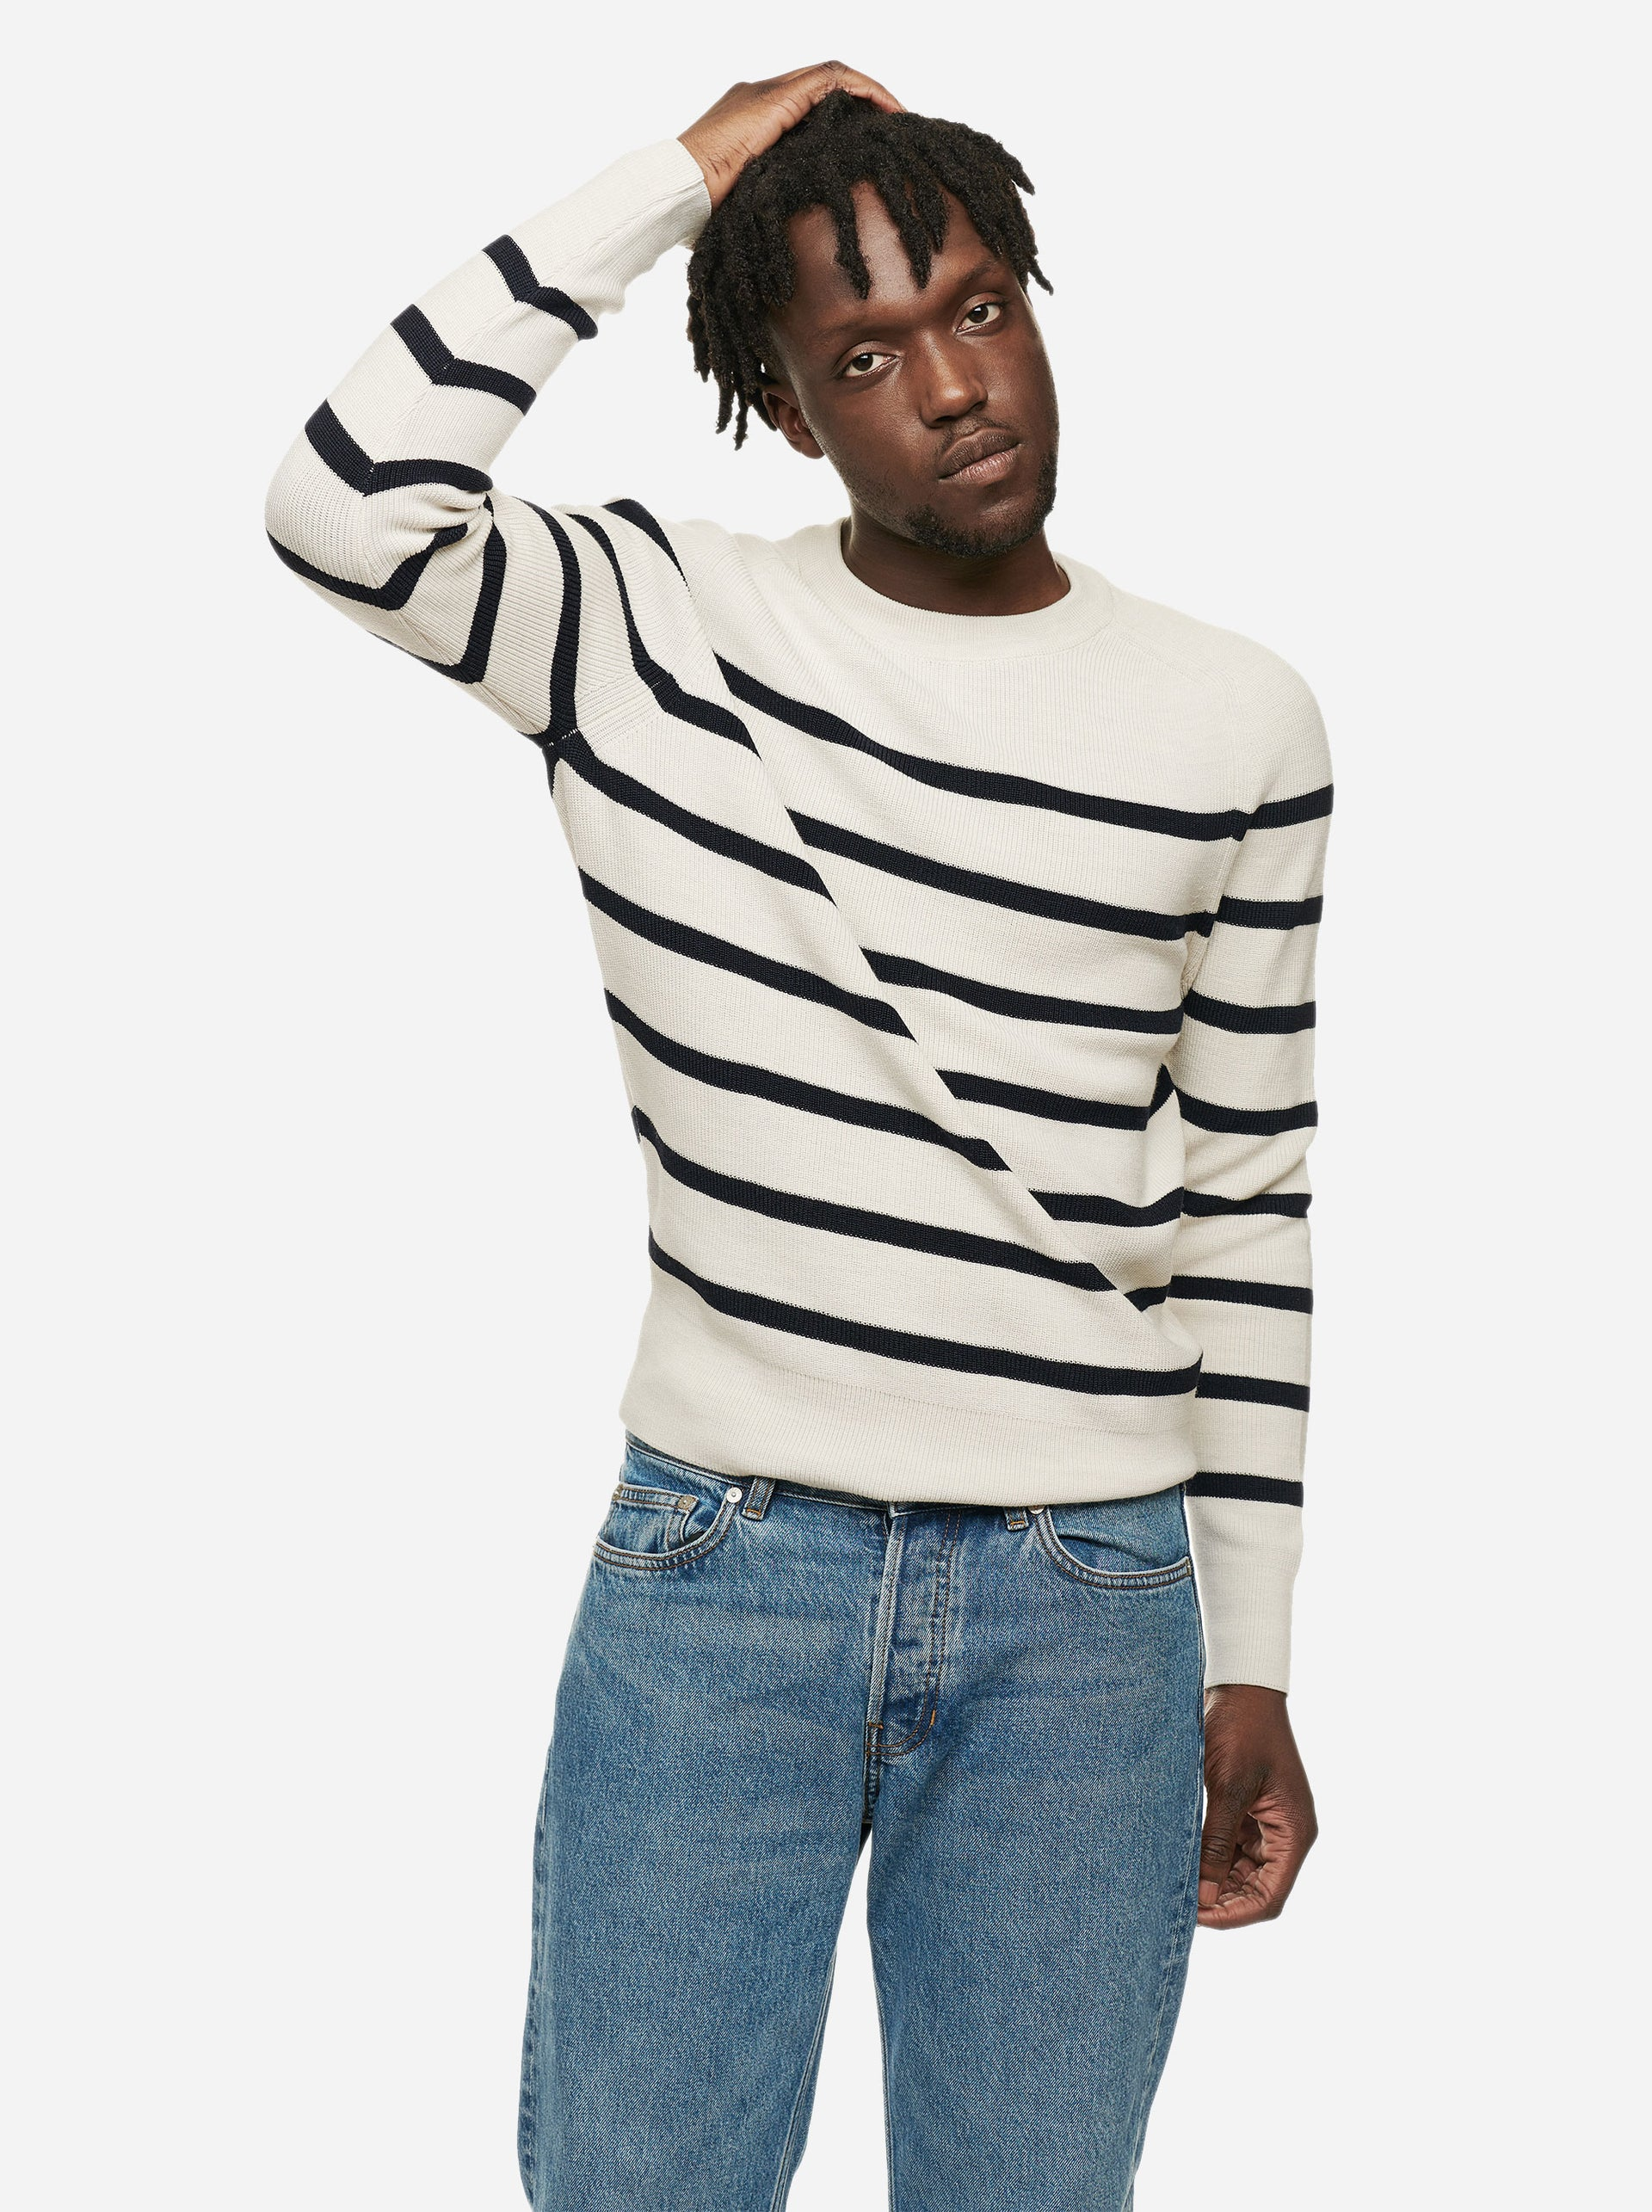 The Crewneck Sweater - Striped